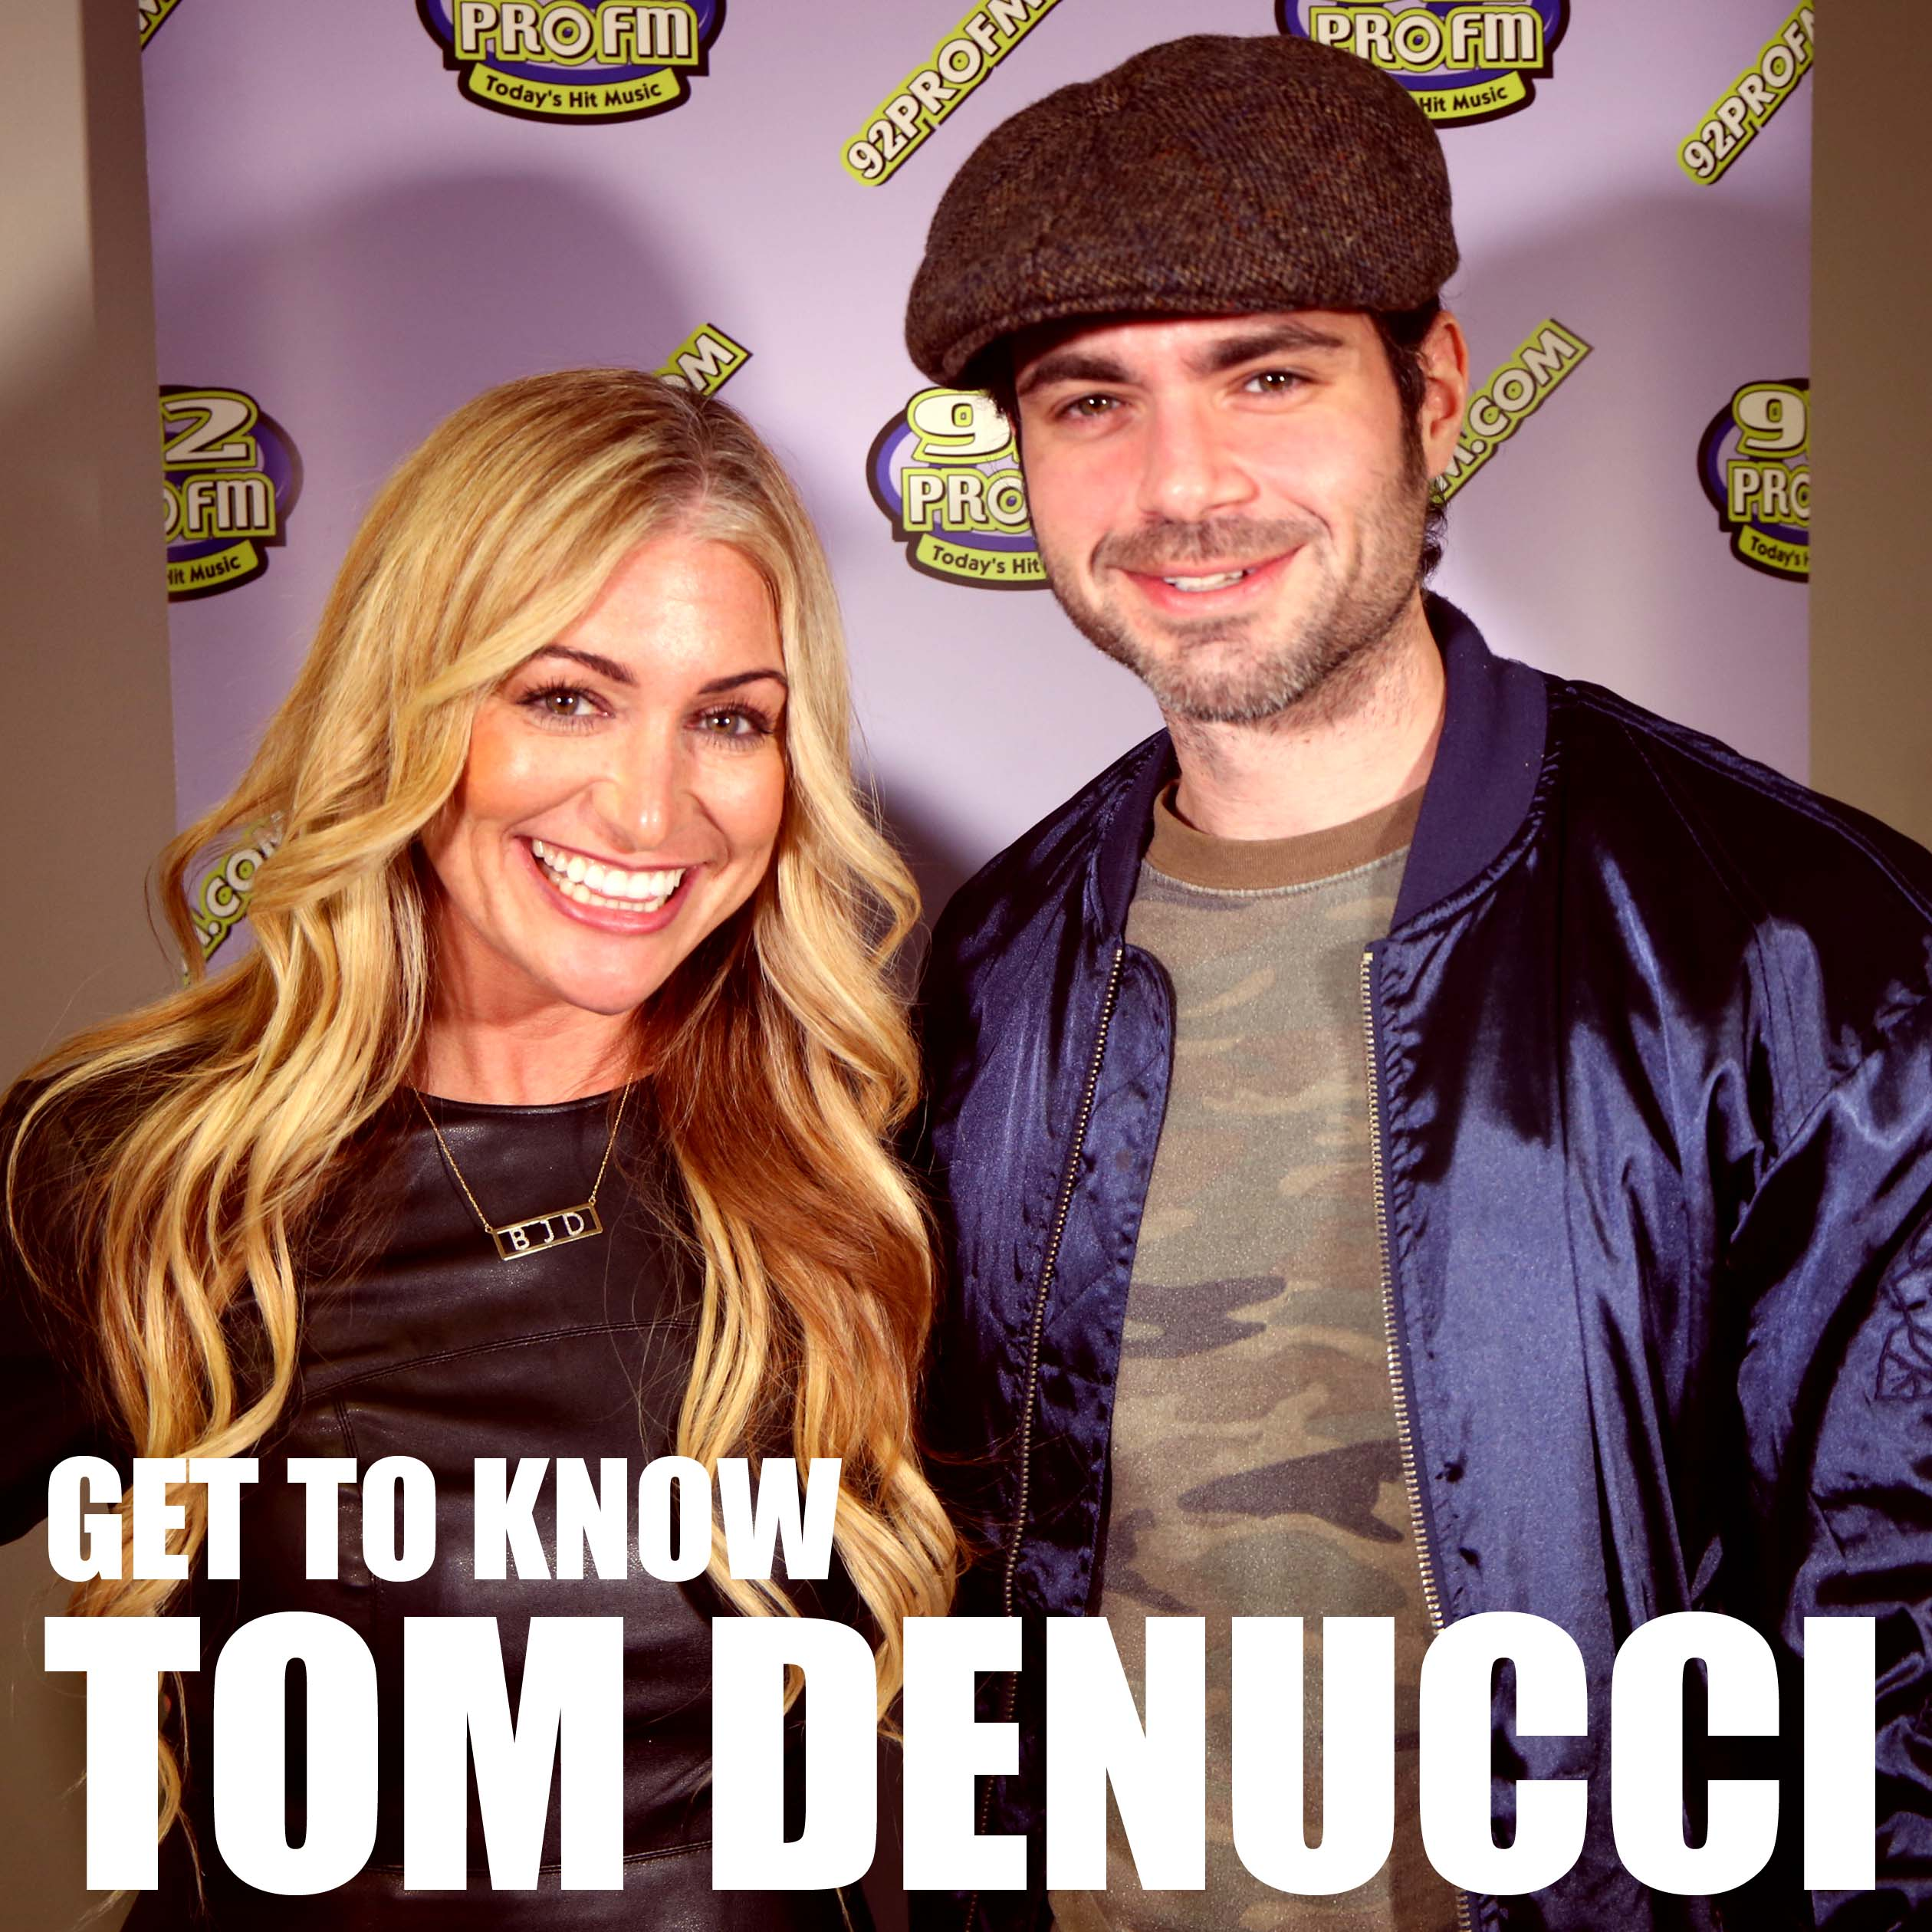 Get to know director / actor Tom DeNucci, a Lil Rhody native!